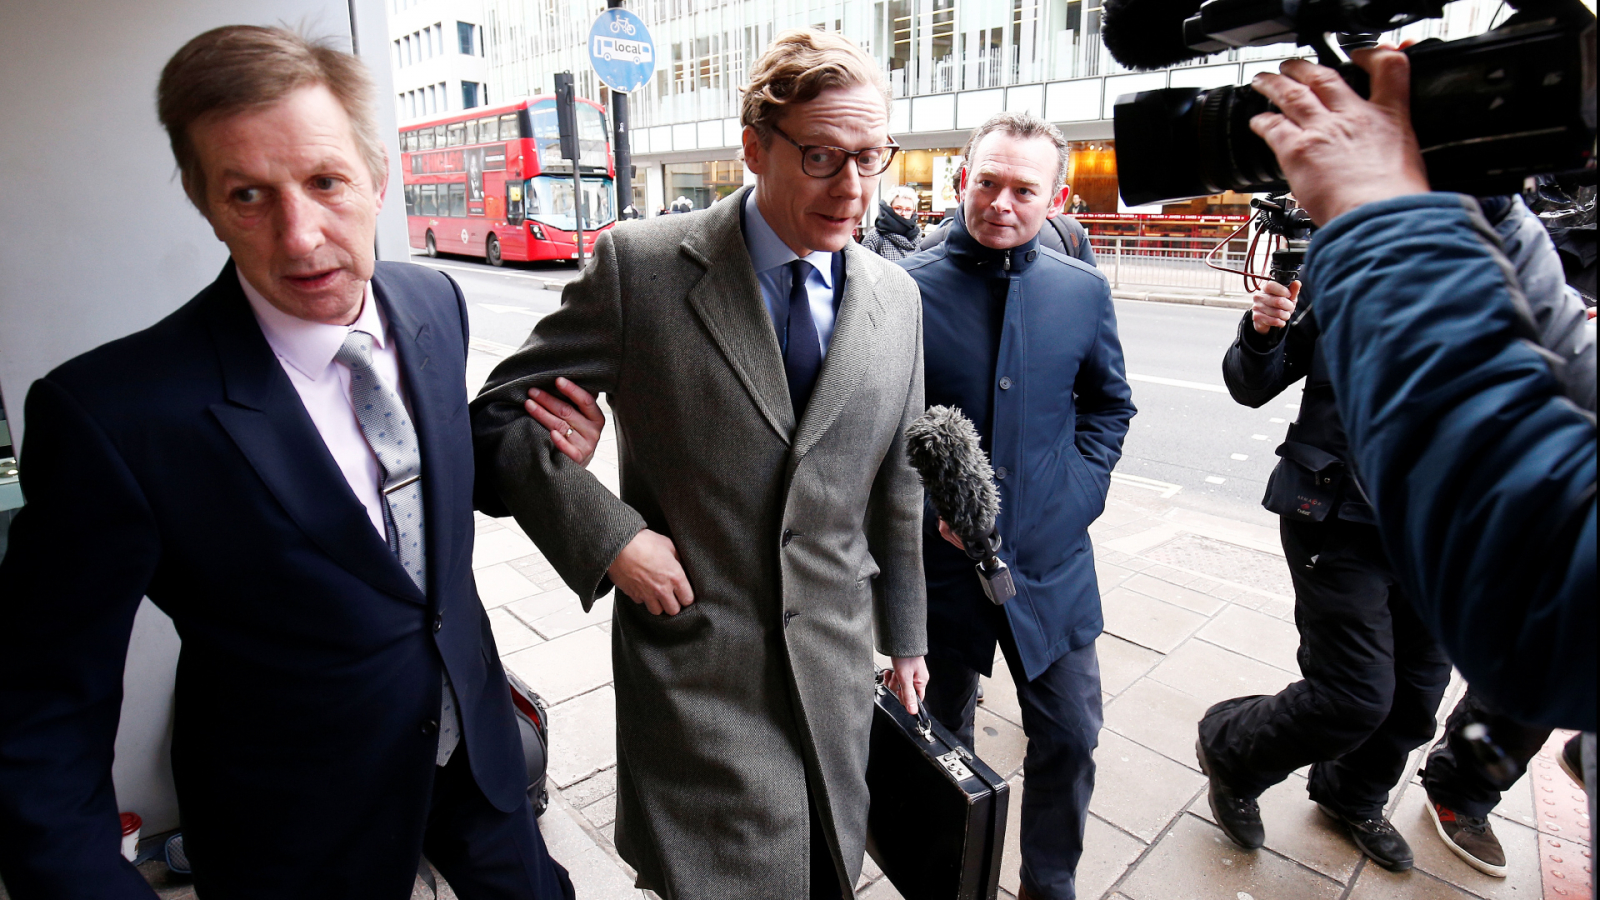 Facebook and Cambridge Analytica suffer backlash following data breach claims